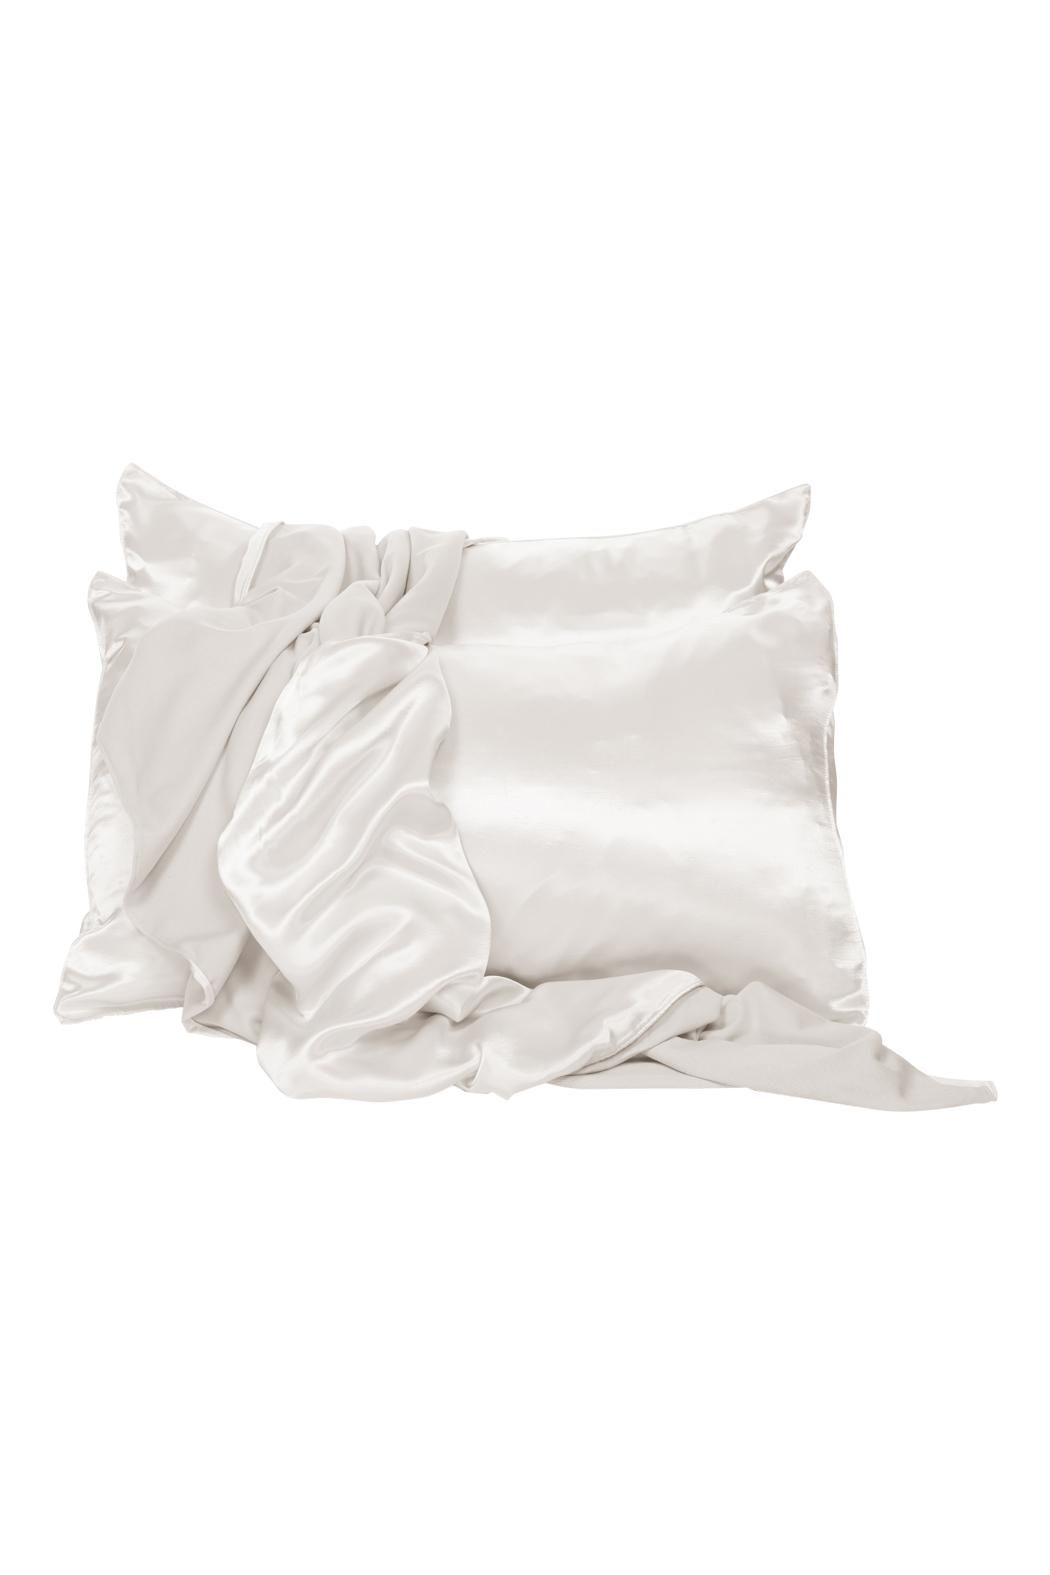 PJHARLOW Pearl Satin Pillowcase - Main Image